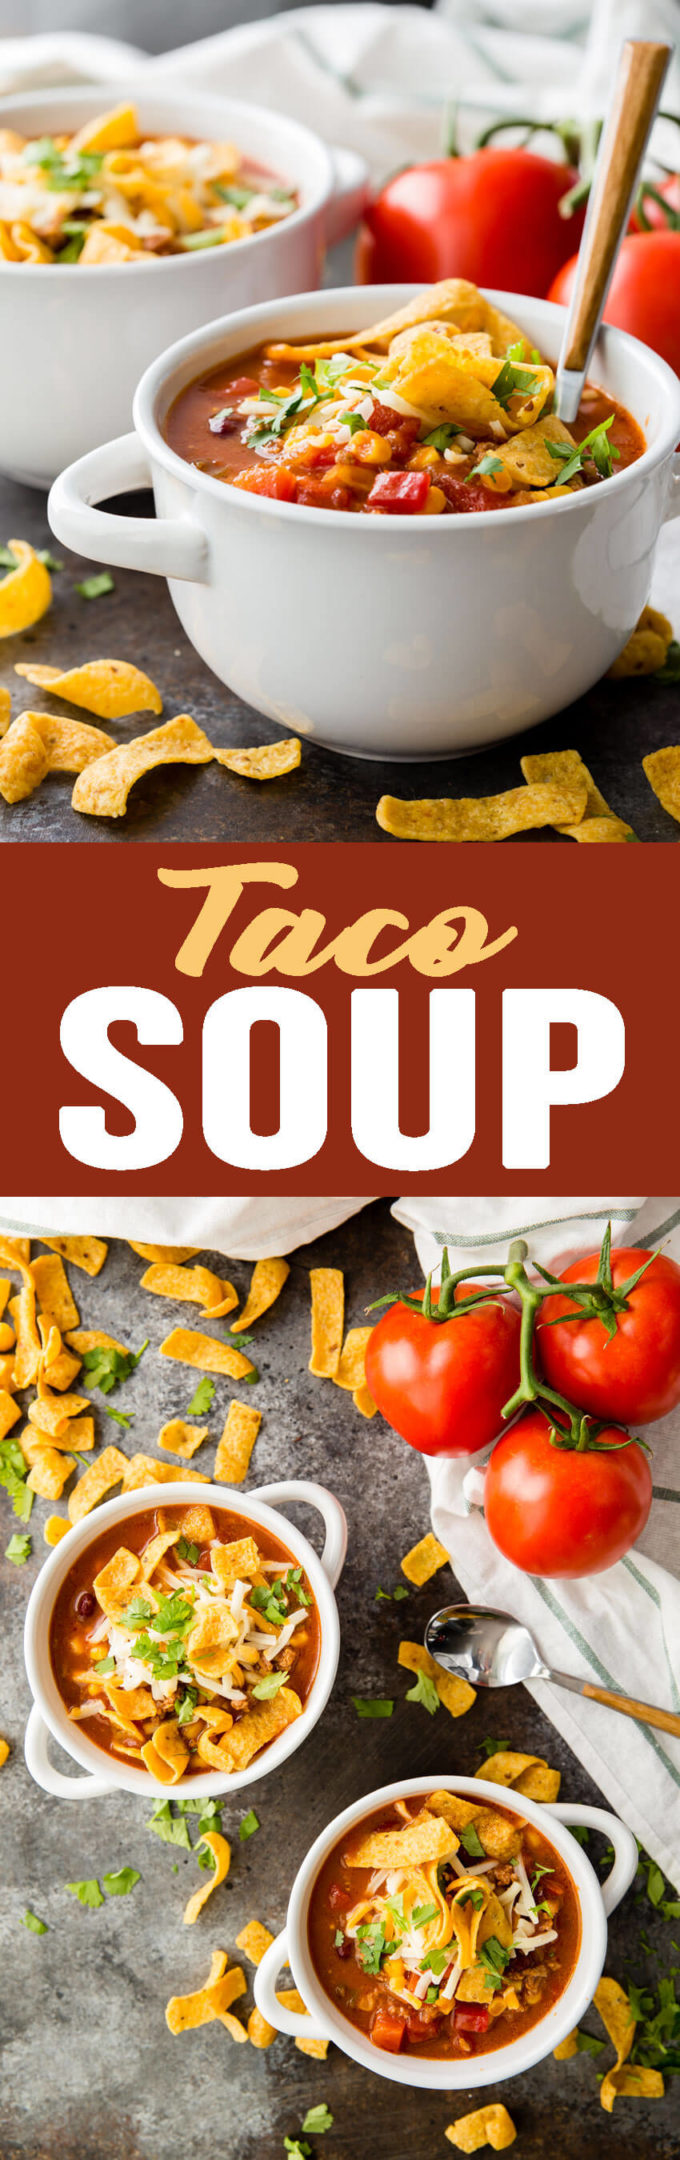 Taco Soup: The most flavorful and easy taco soup you will ever eattakes only 10-15 minutes to throw together. Healthy, easy, full of protein, fiber, and flavor; you can't go wrong with this soup!